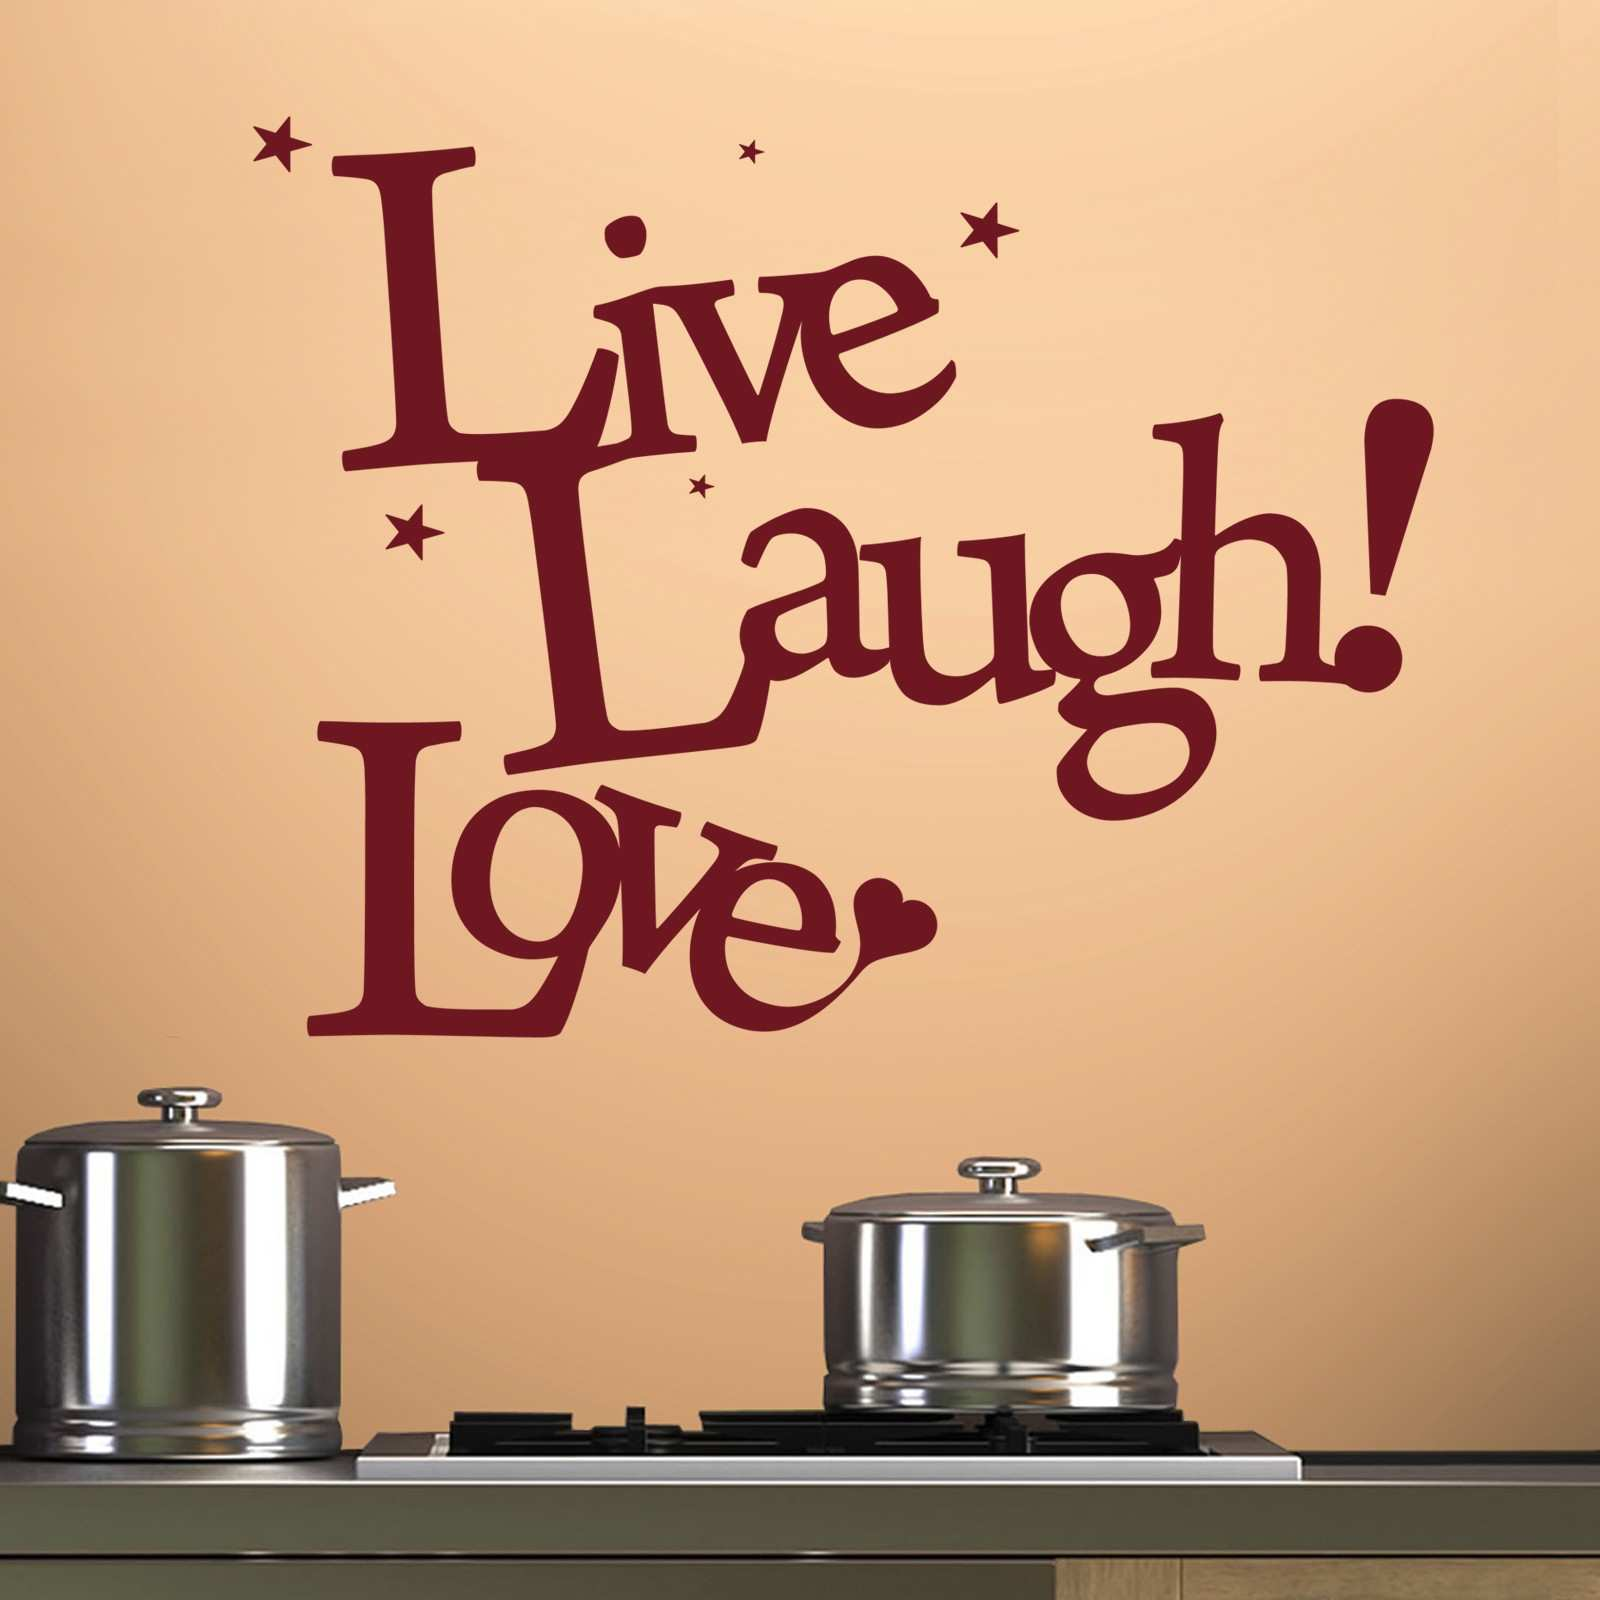 Famous Wall Art Live Laugh Love Model Wall Art Collections